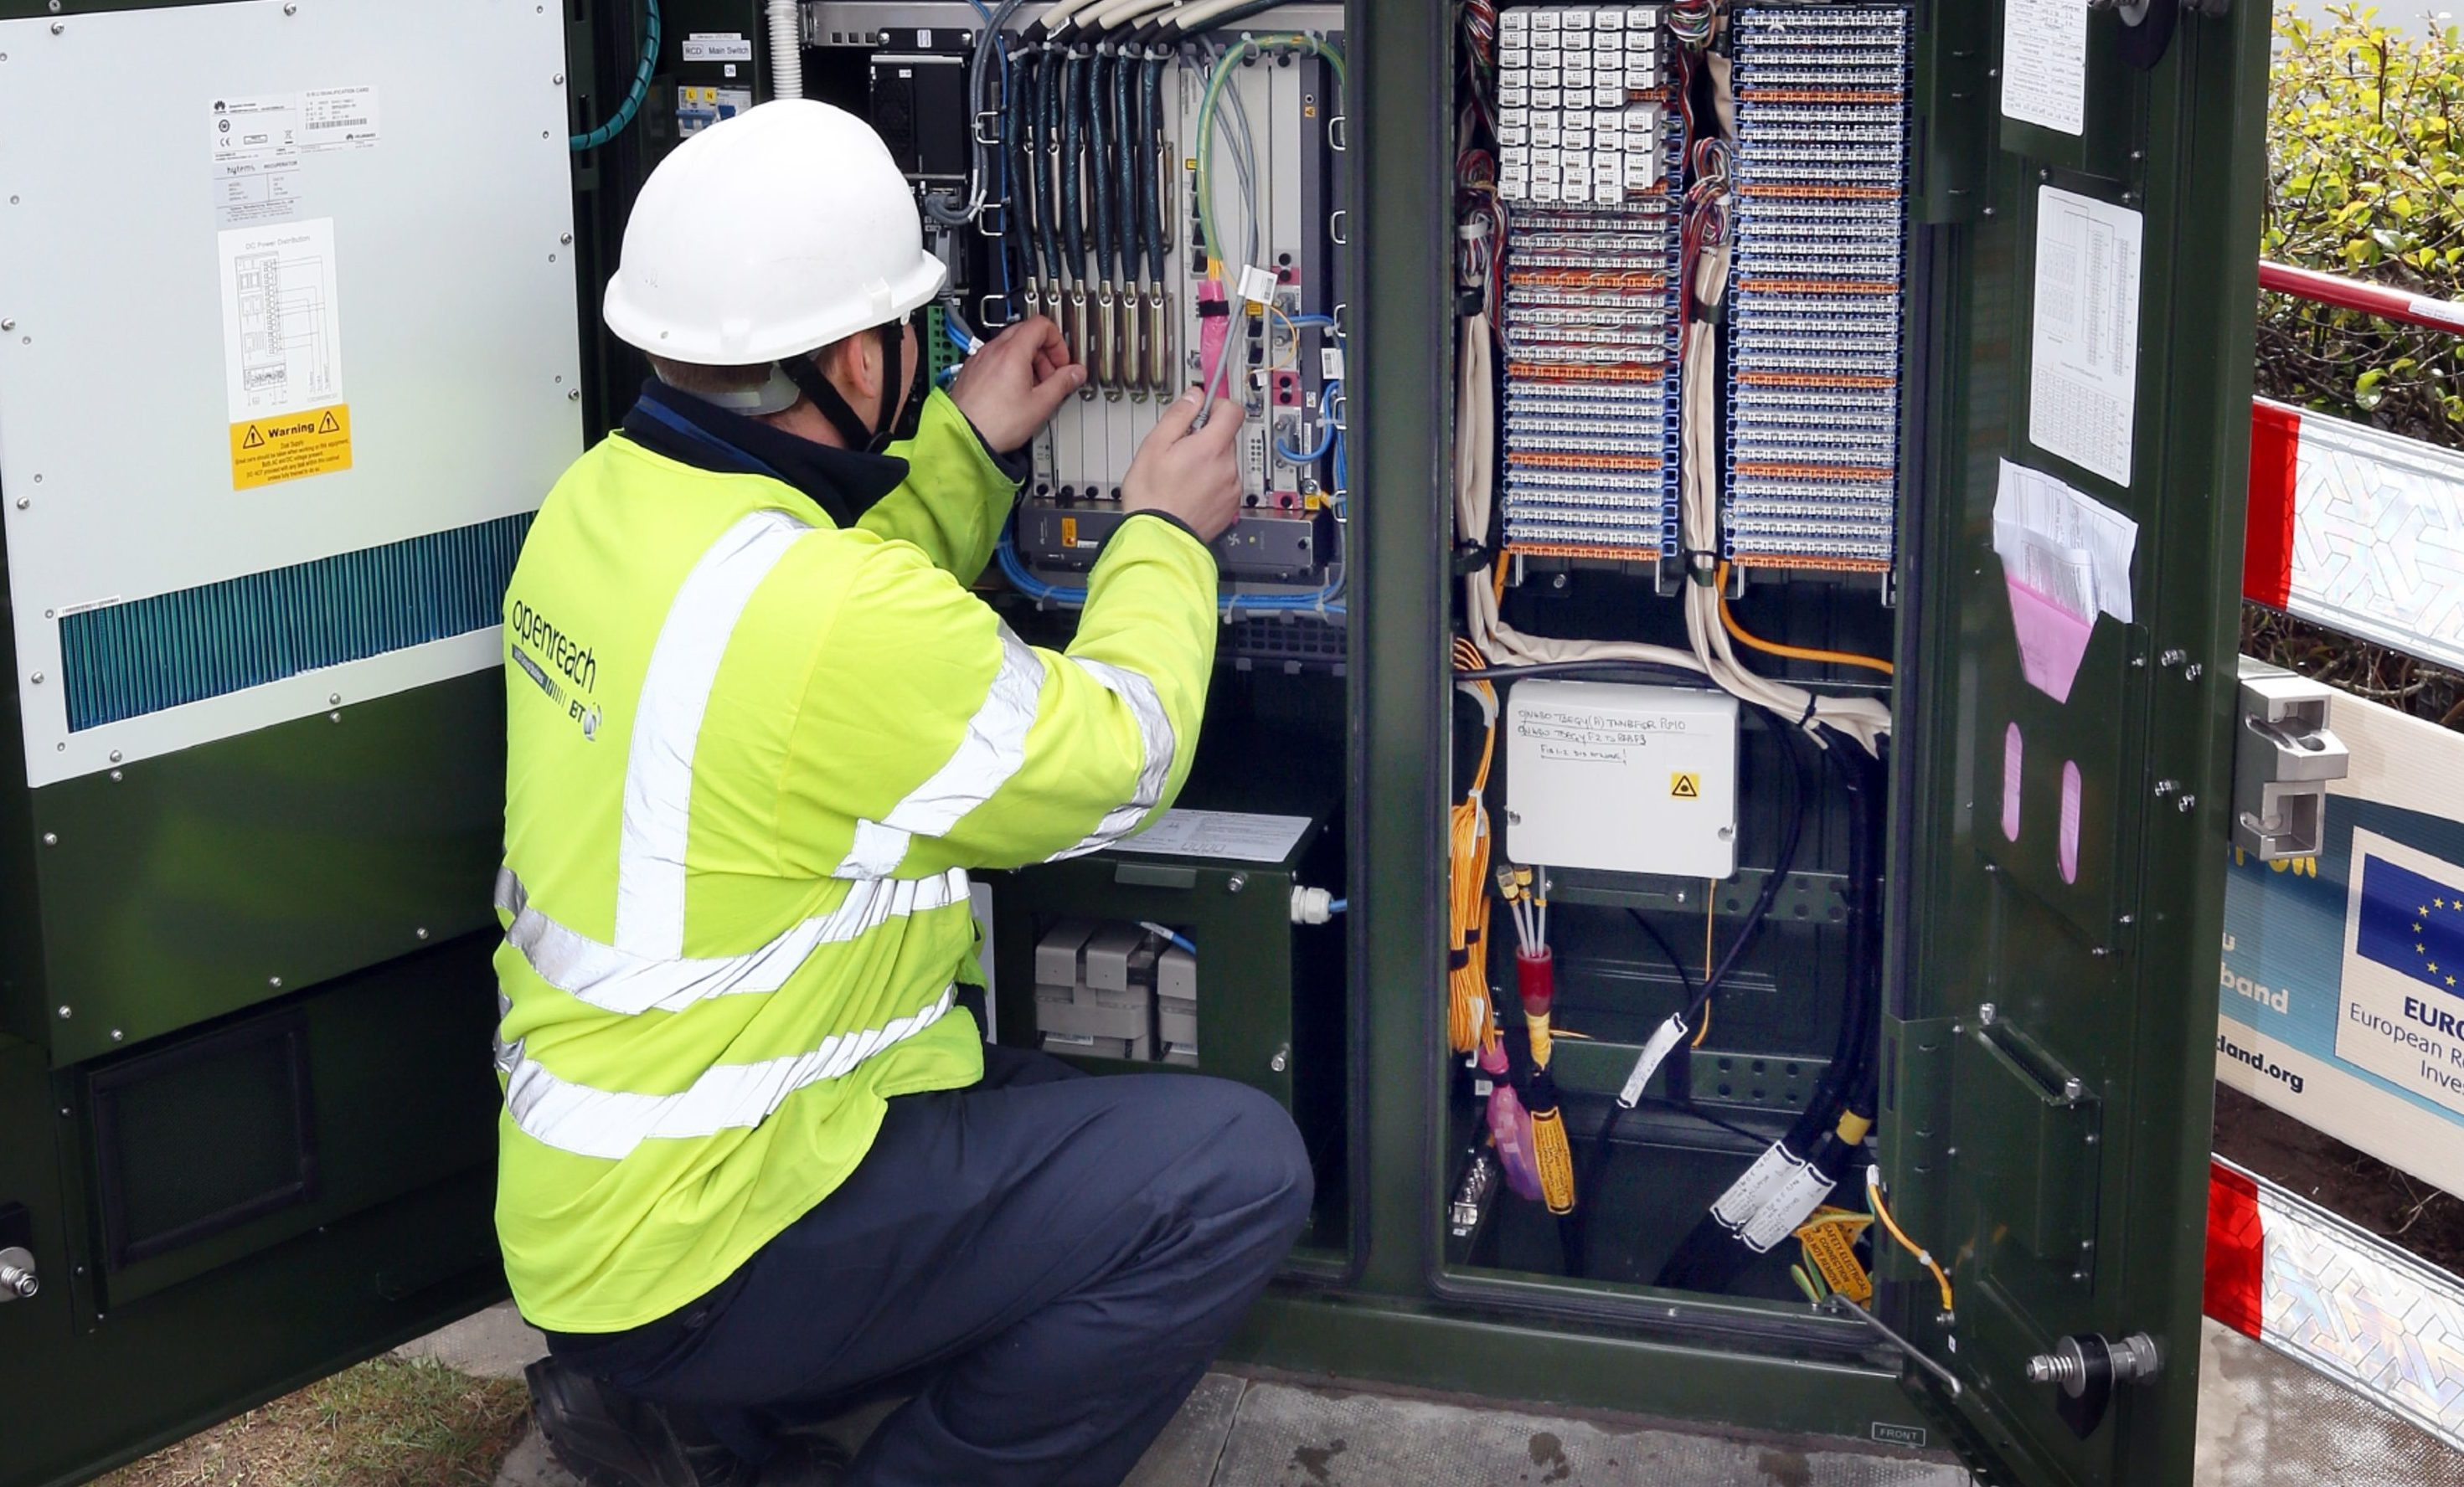 The Federation of Small Businesses want a better broadband service for rural firms in Scotland.